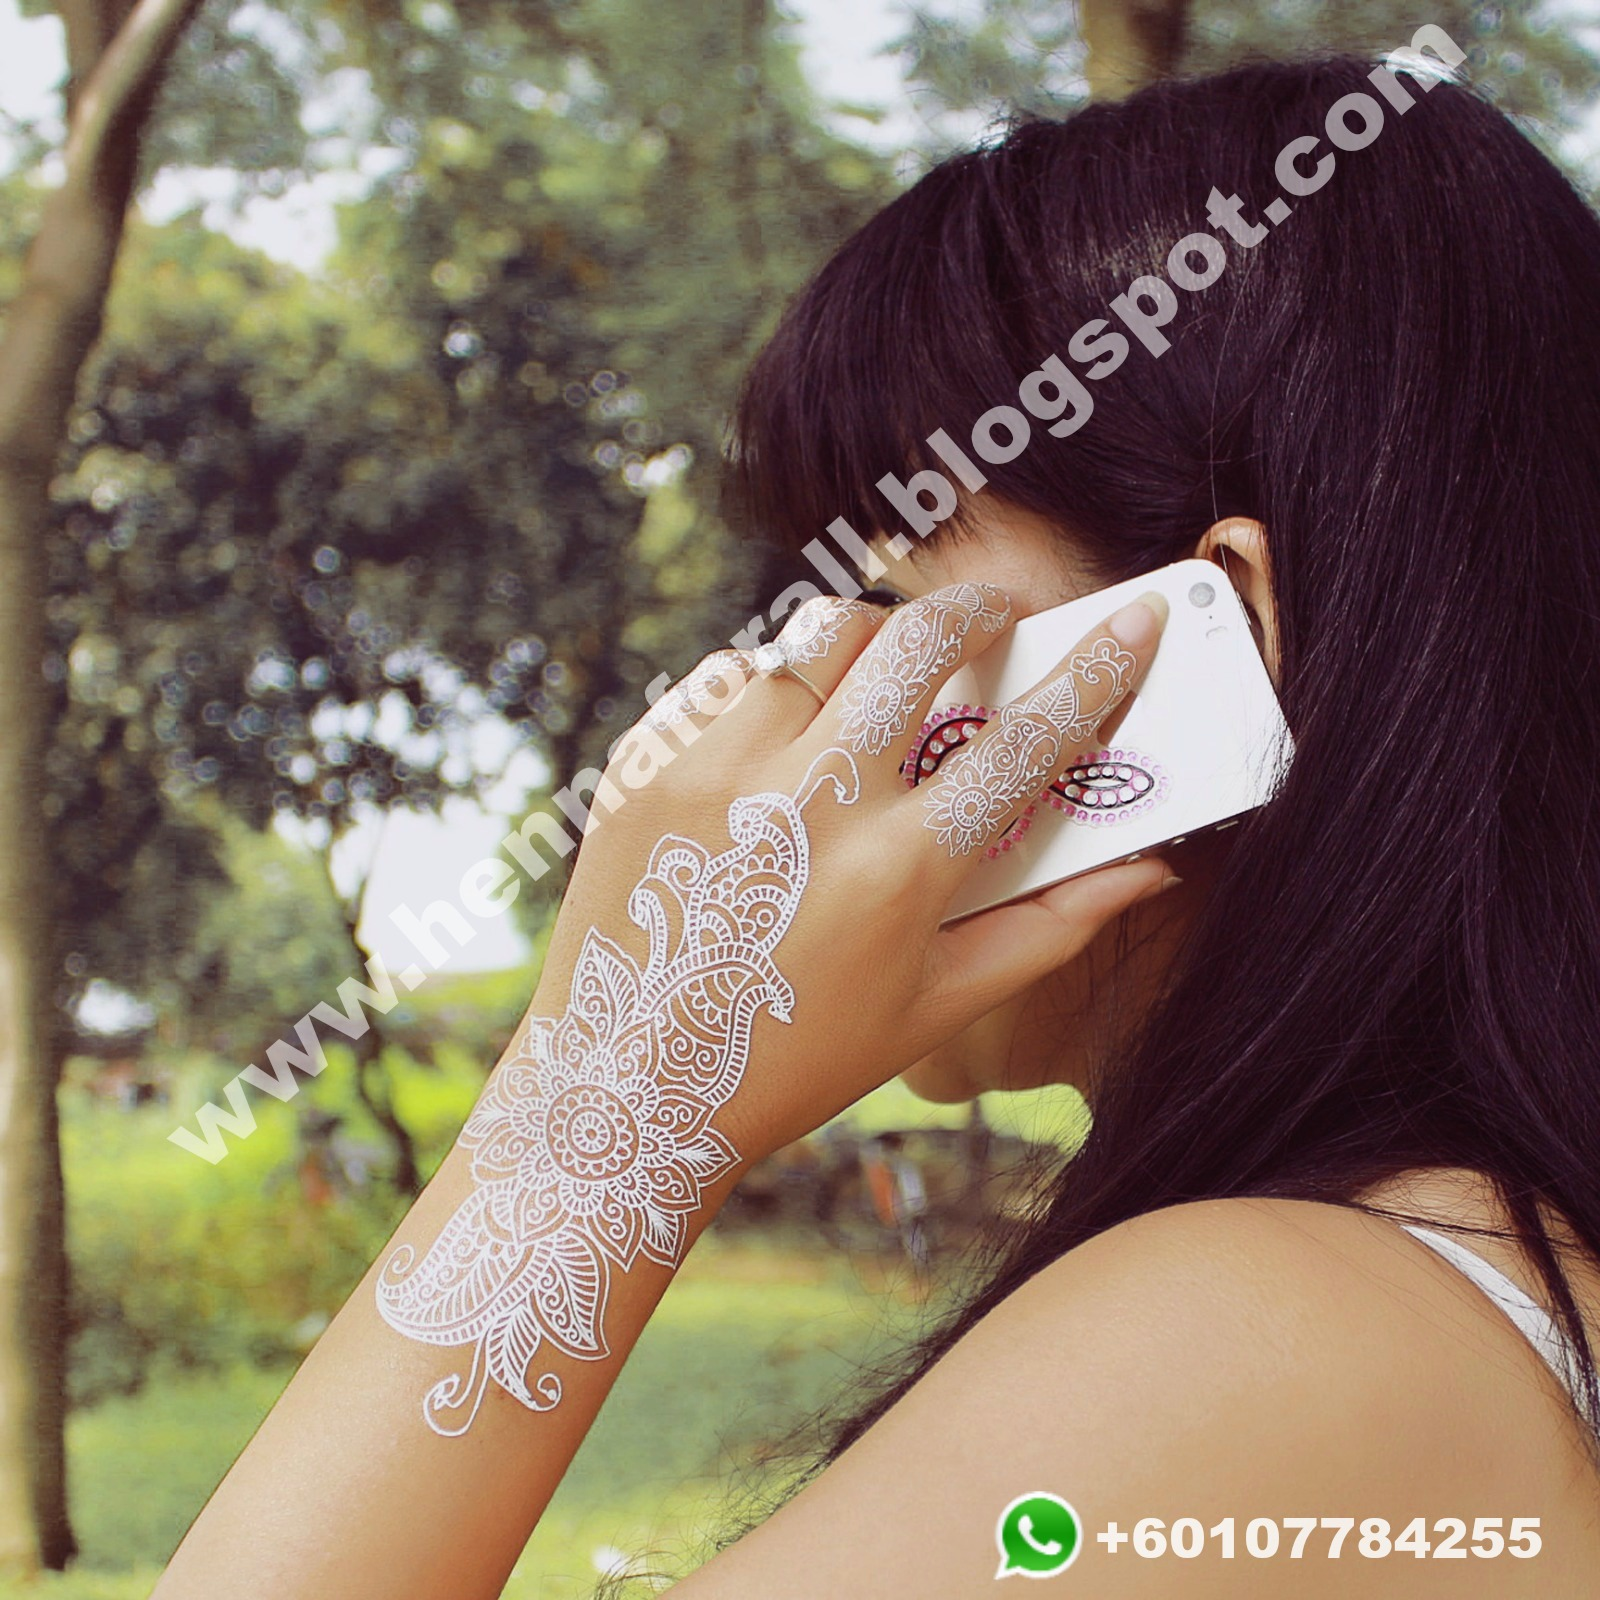 WHOLESALE OF HENNA AND FASHION ACCESSORIES WORLDWIDE White Henna